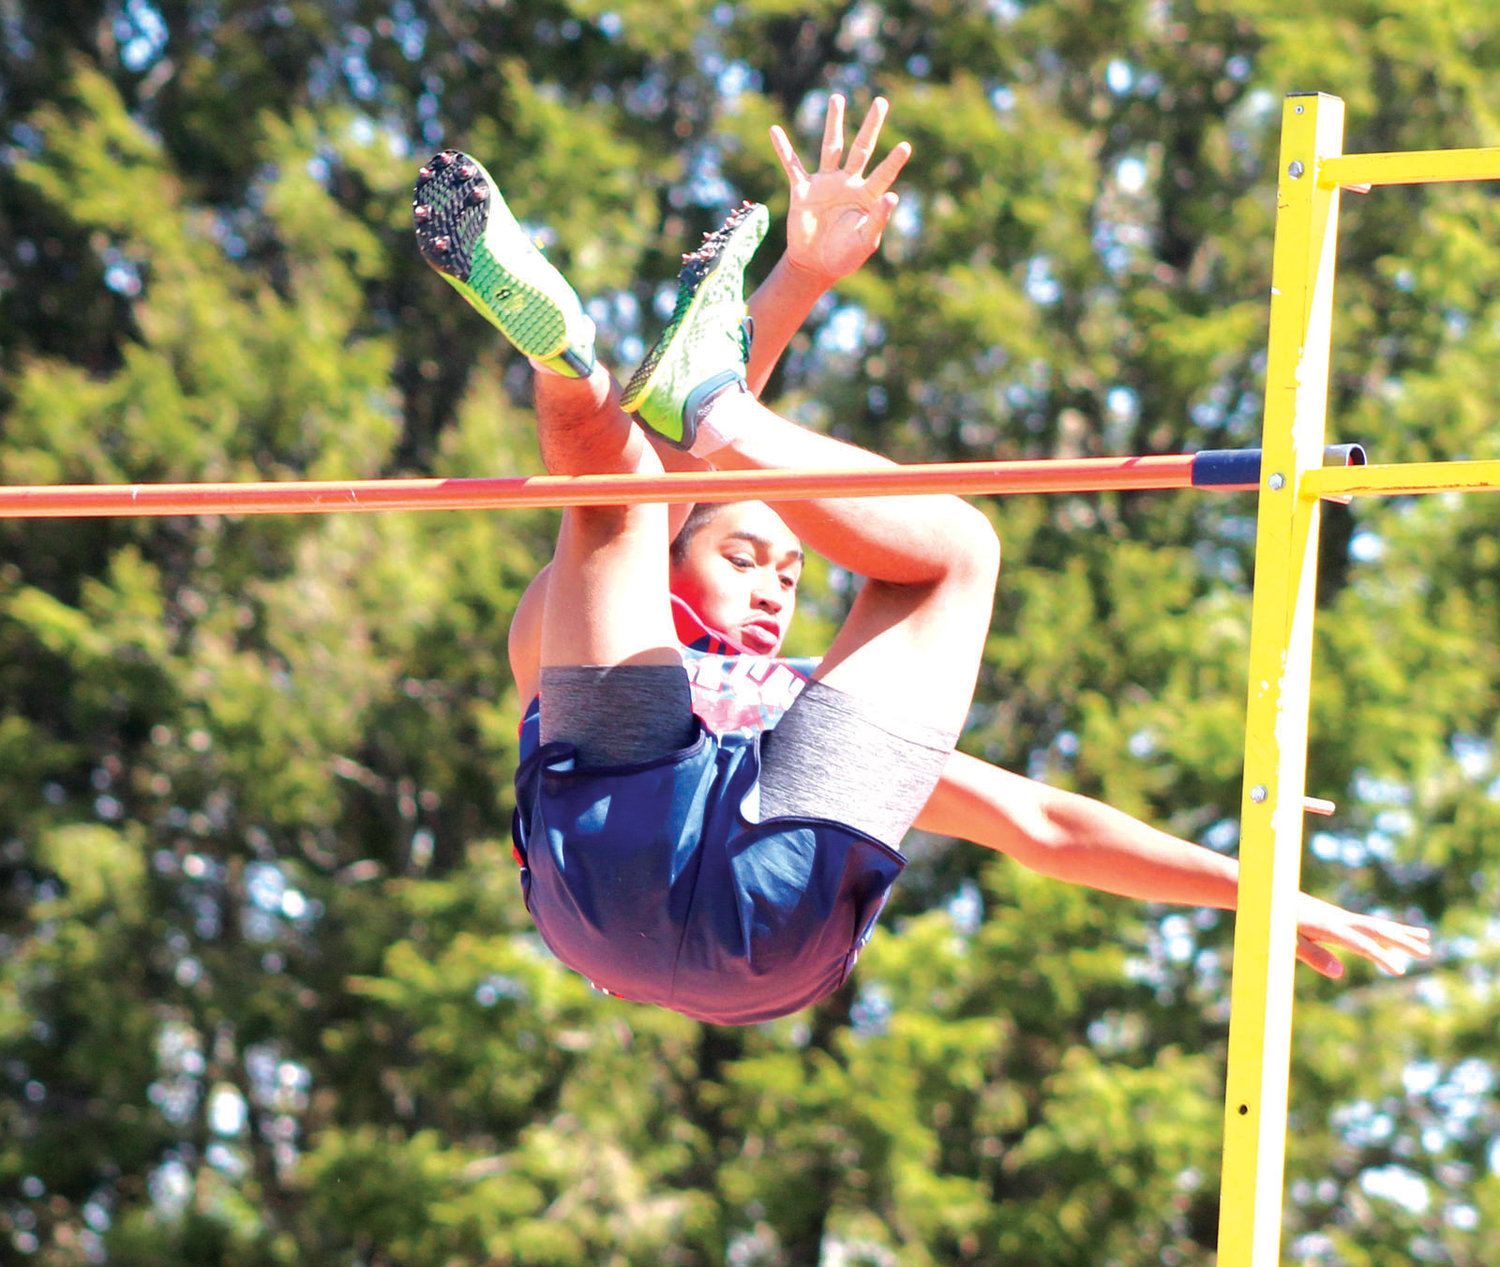 RAISING THE BAR: Toll Gate's Elijah Aguilar clears the bar during the pole vault competition at the Sgt. Brian St. Germain Invitational in West Warwick over the weekend. Aguilar took 12th place in the event, which was the last competition prior to this weekend's class championships in Coventry.